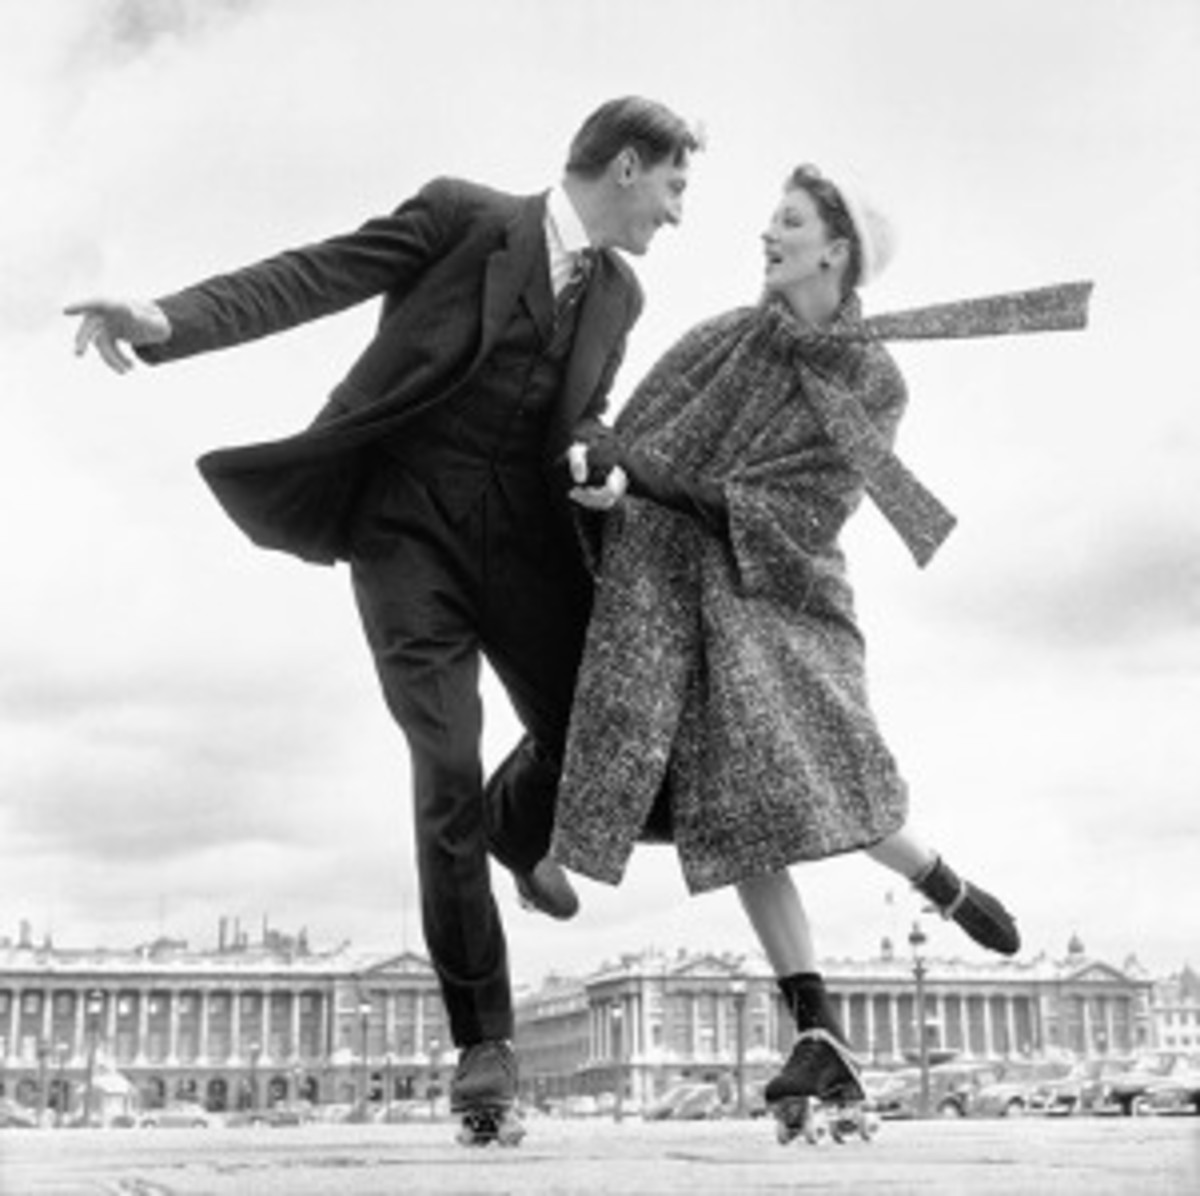 Avedon brought a fresh approach to fashion, such as this whimsical 1956 photo of models Suzy Parker and Robin Tattersall rollerskating in Paris.